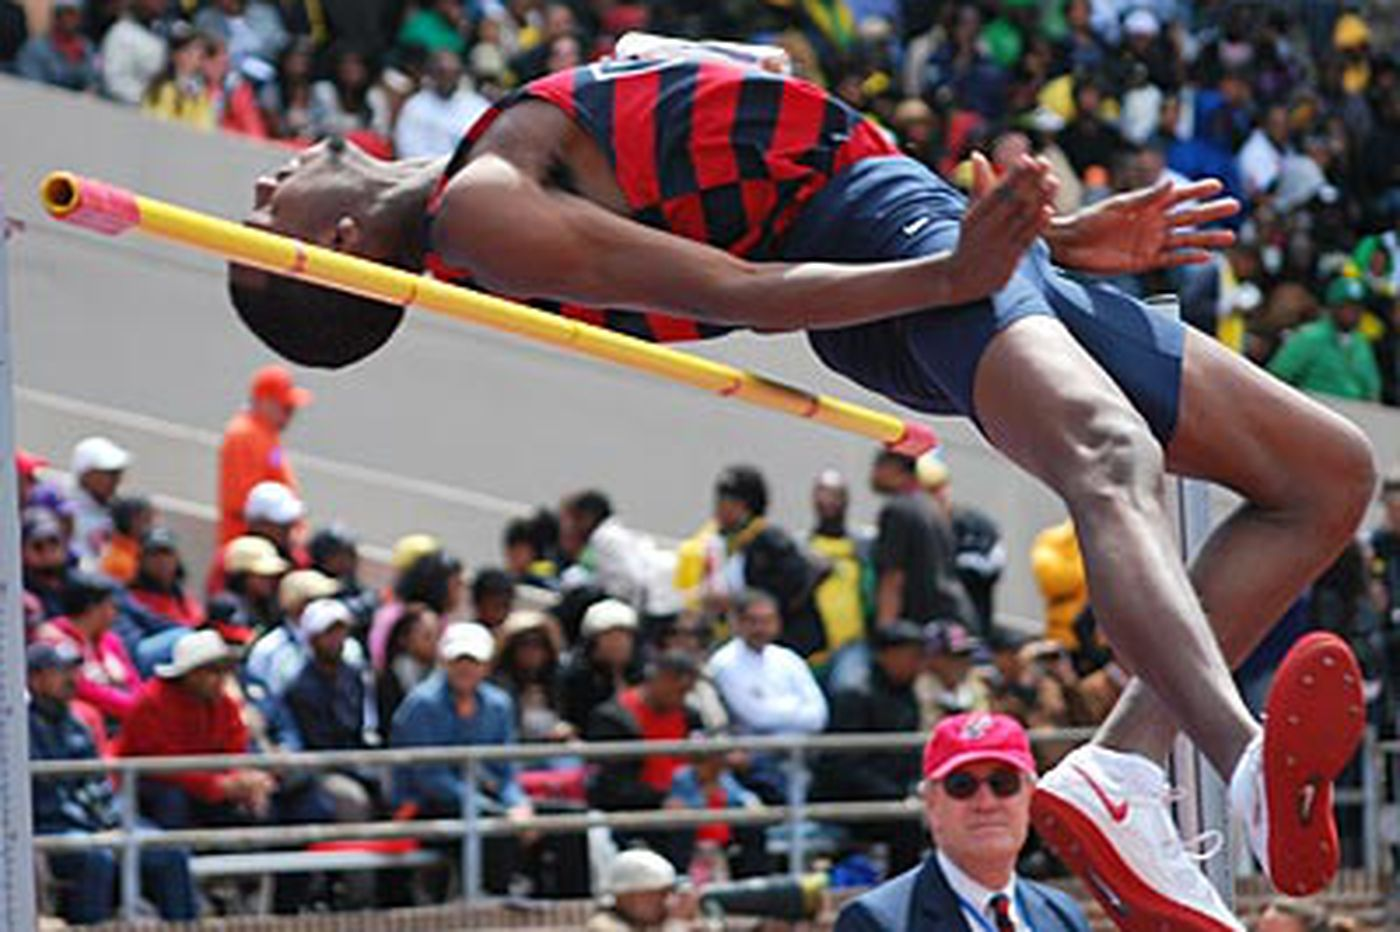 Maalik Reynolds aims to make Penn Relays a springboard for Olympics